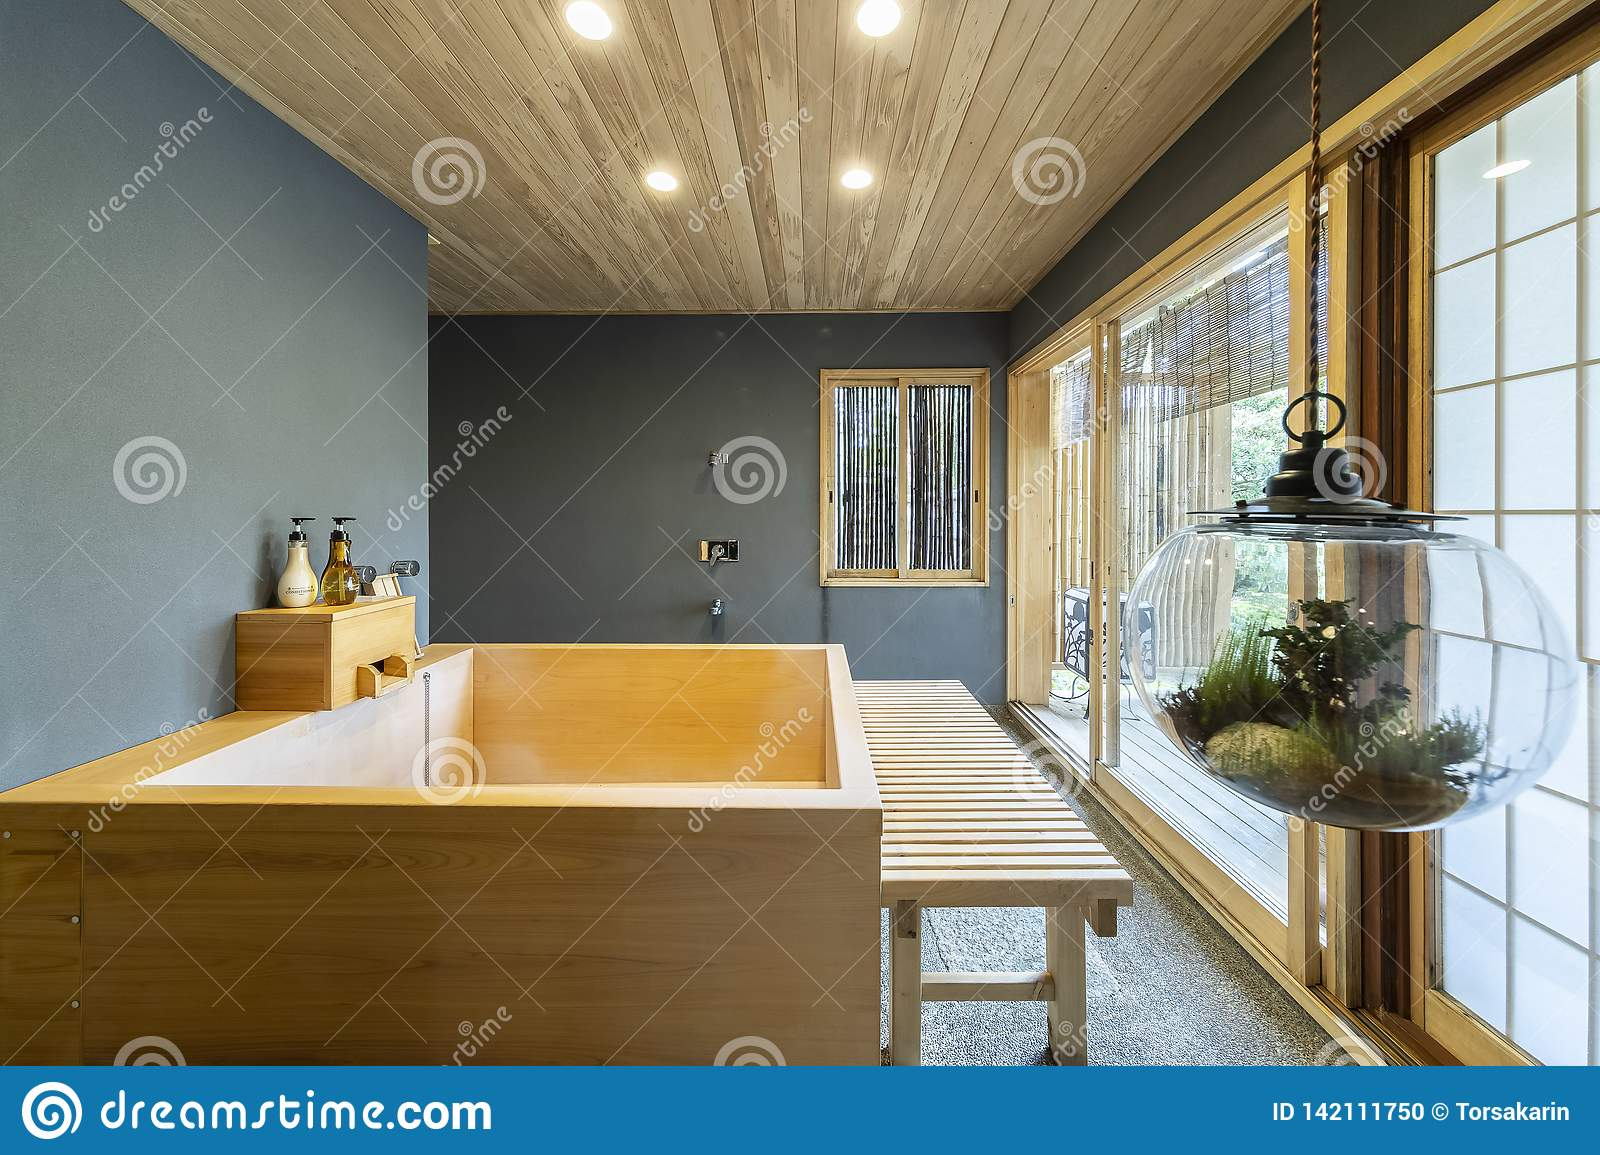 Wooden Bathtub Stock Photo Image Of Japanese Private 142111750